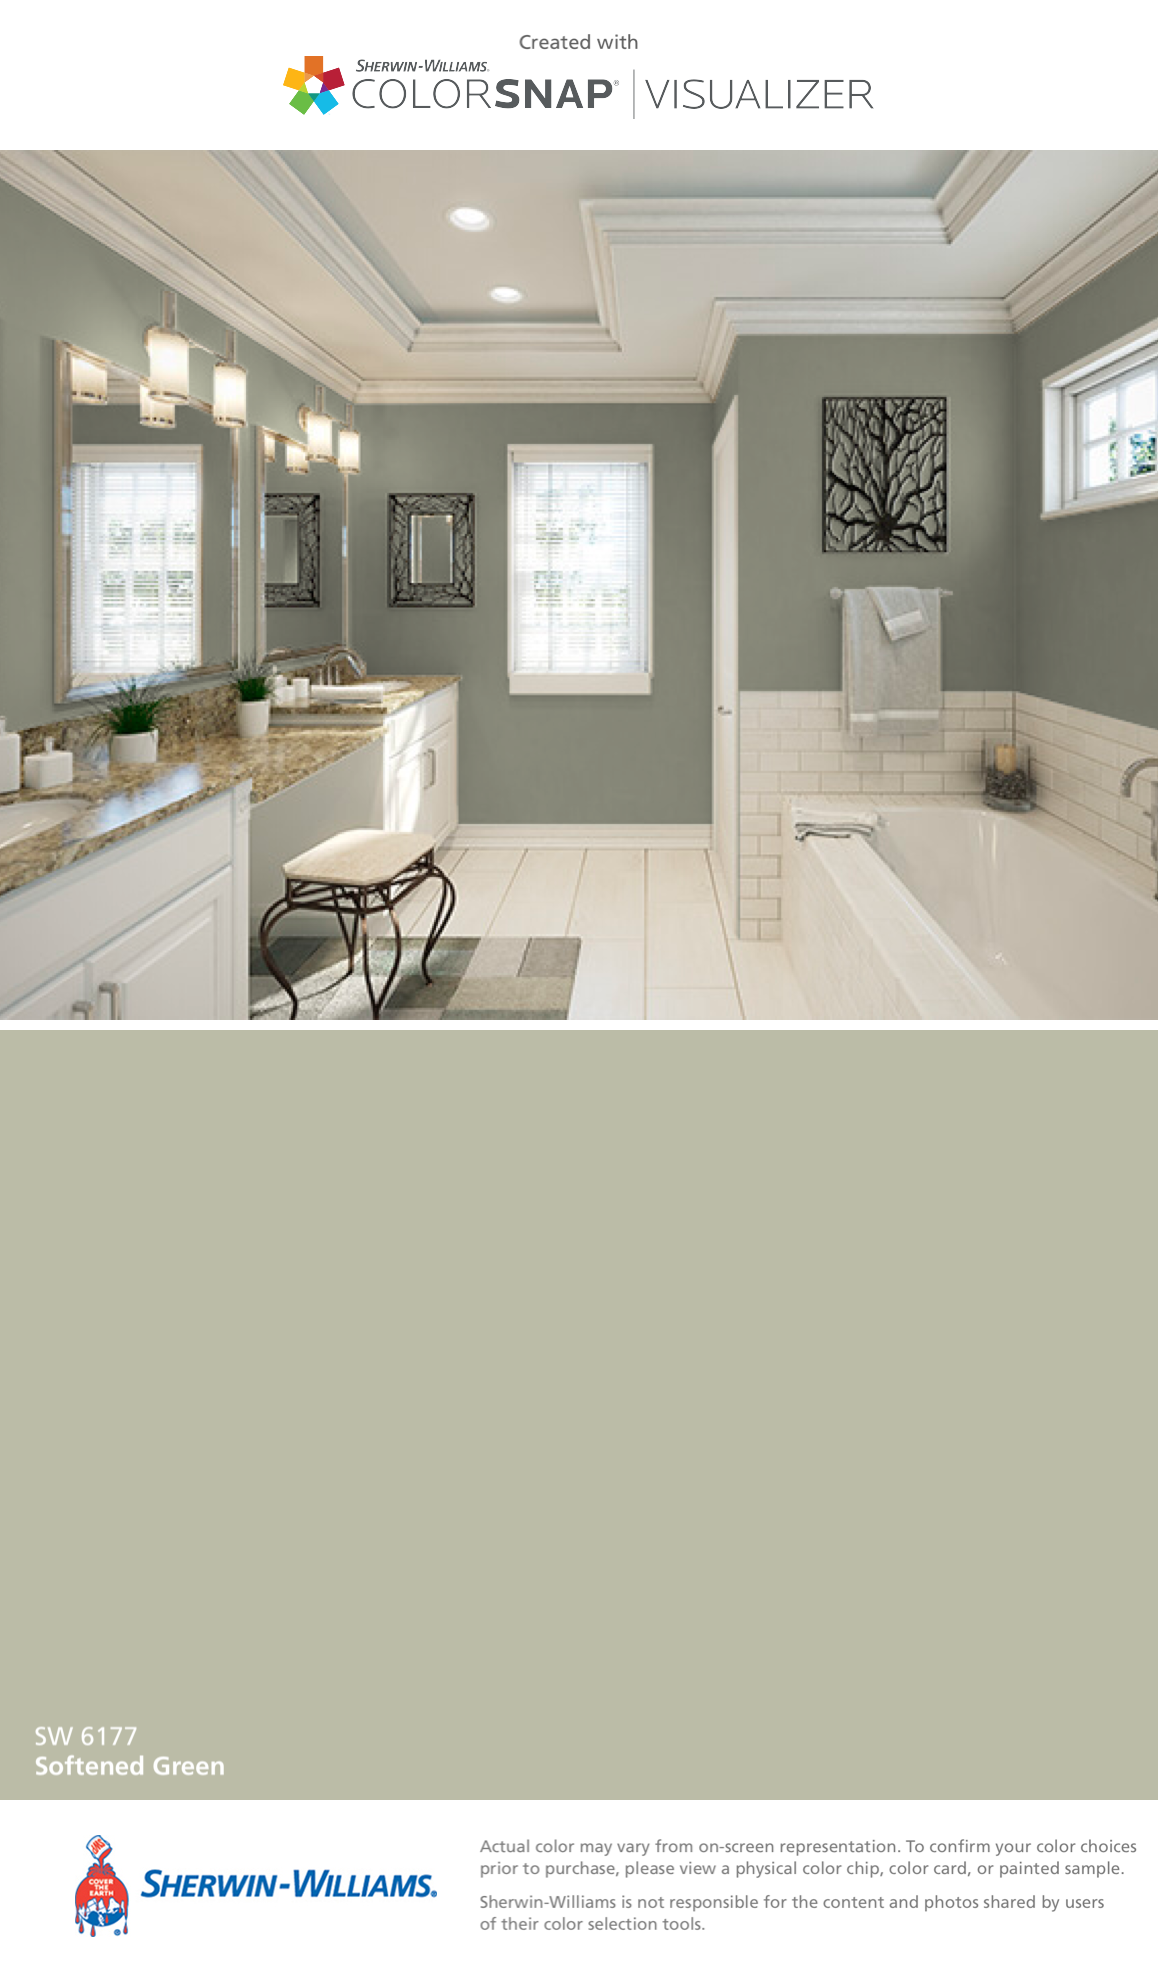 Sherwin Williams Foyer Colors : I found this color with colorsnap� visualizer for iphone